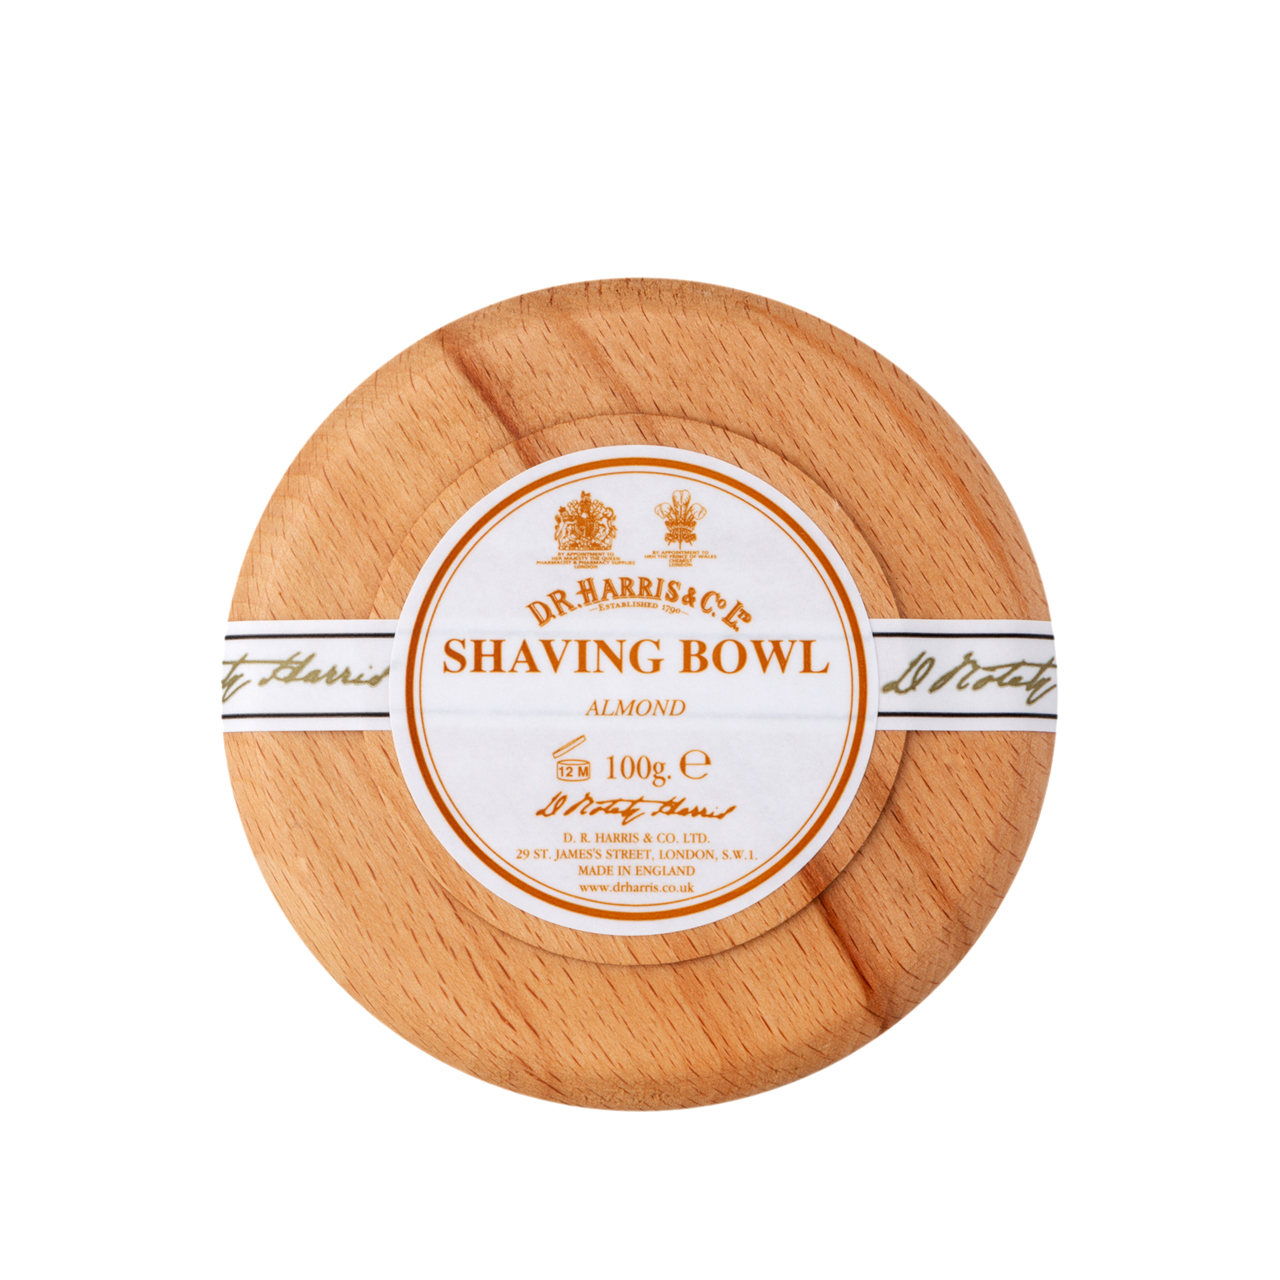 Almond - Shaving Soap Bowl